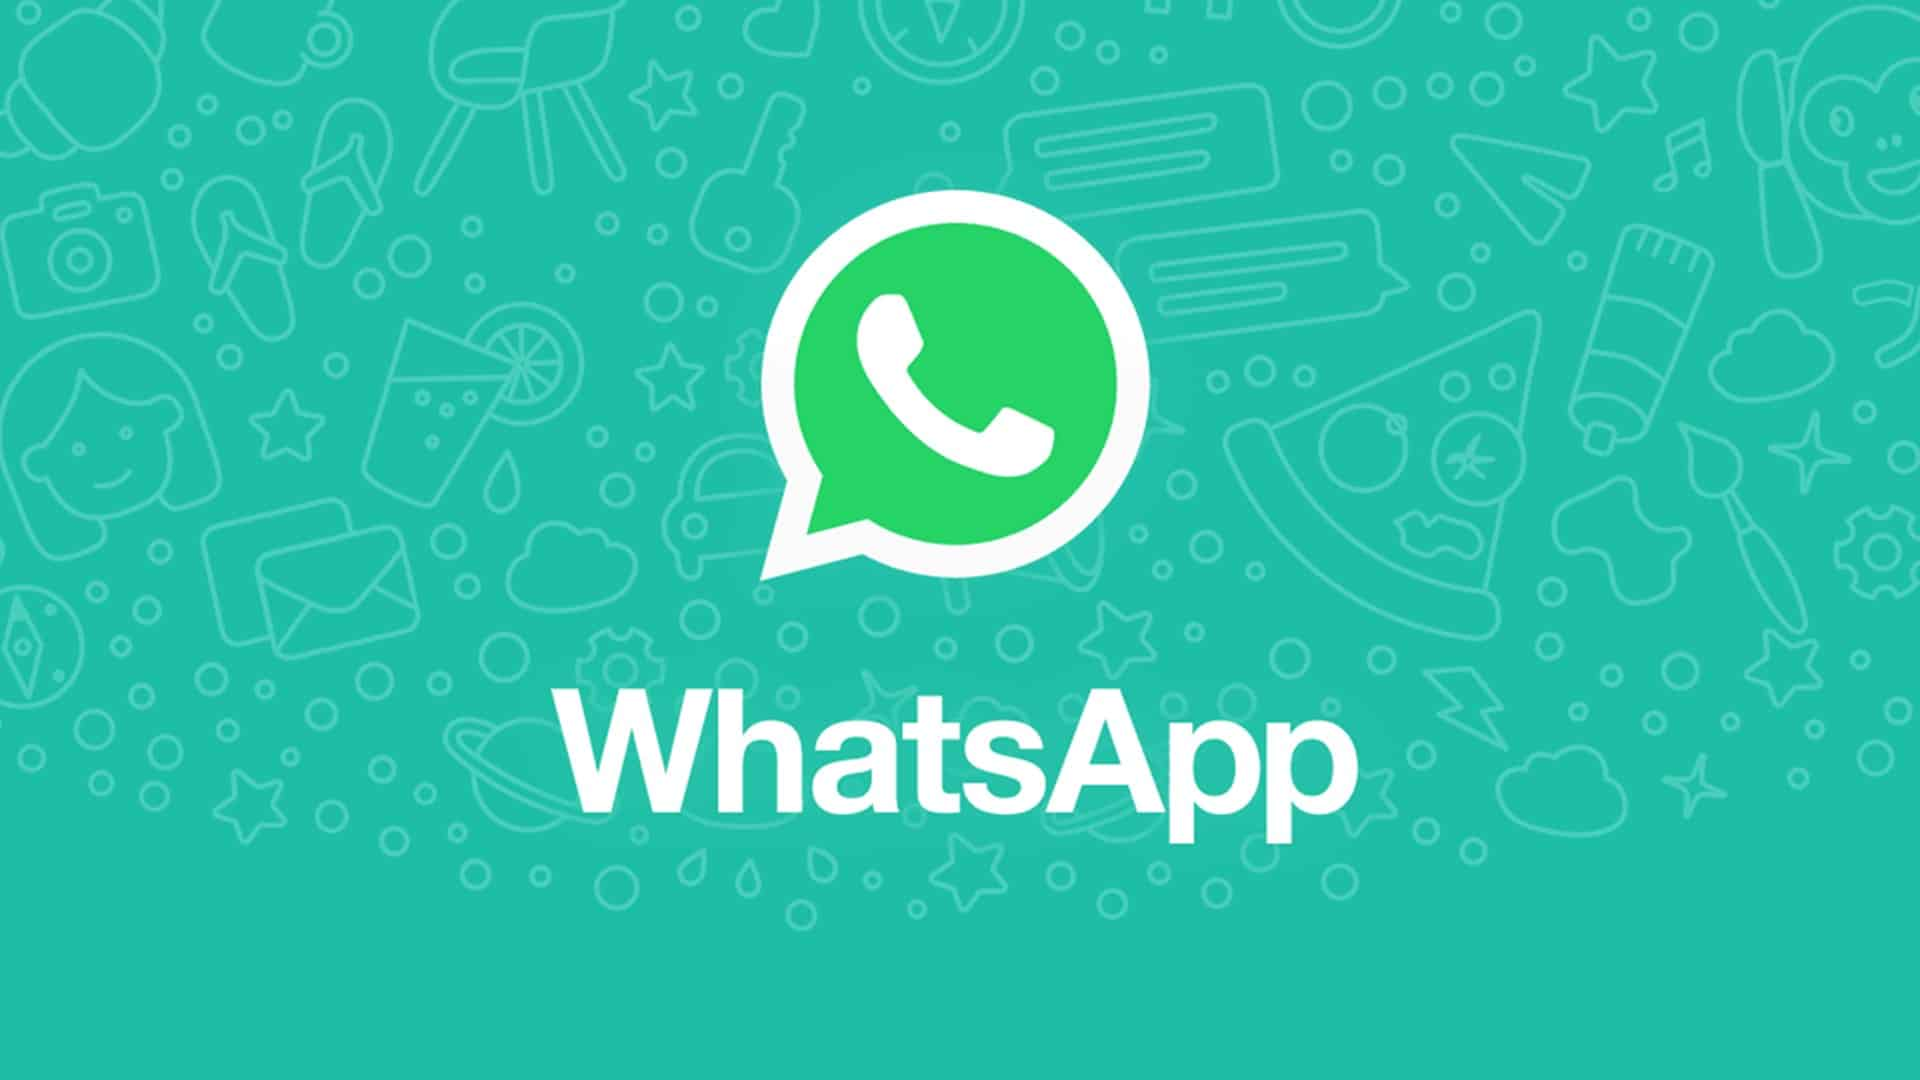 User reports on spam do not undermine end-to-end encryption: WhatsApp